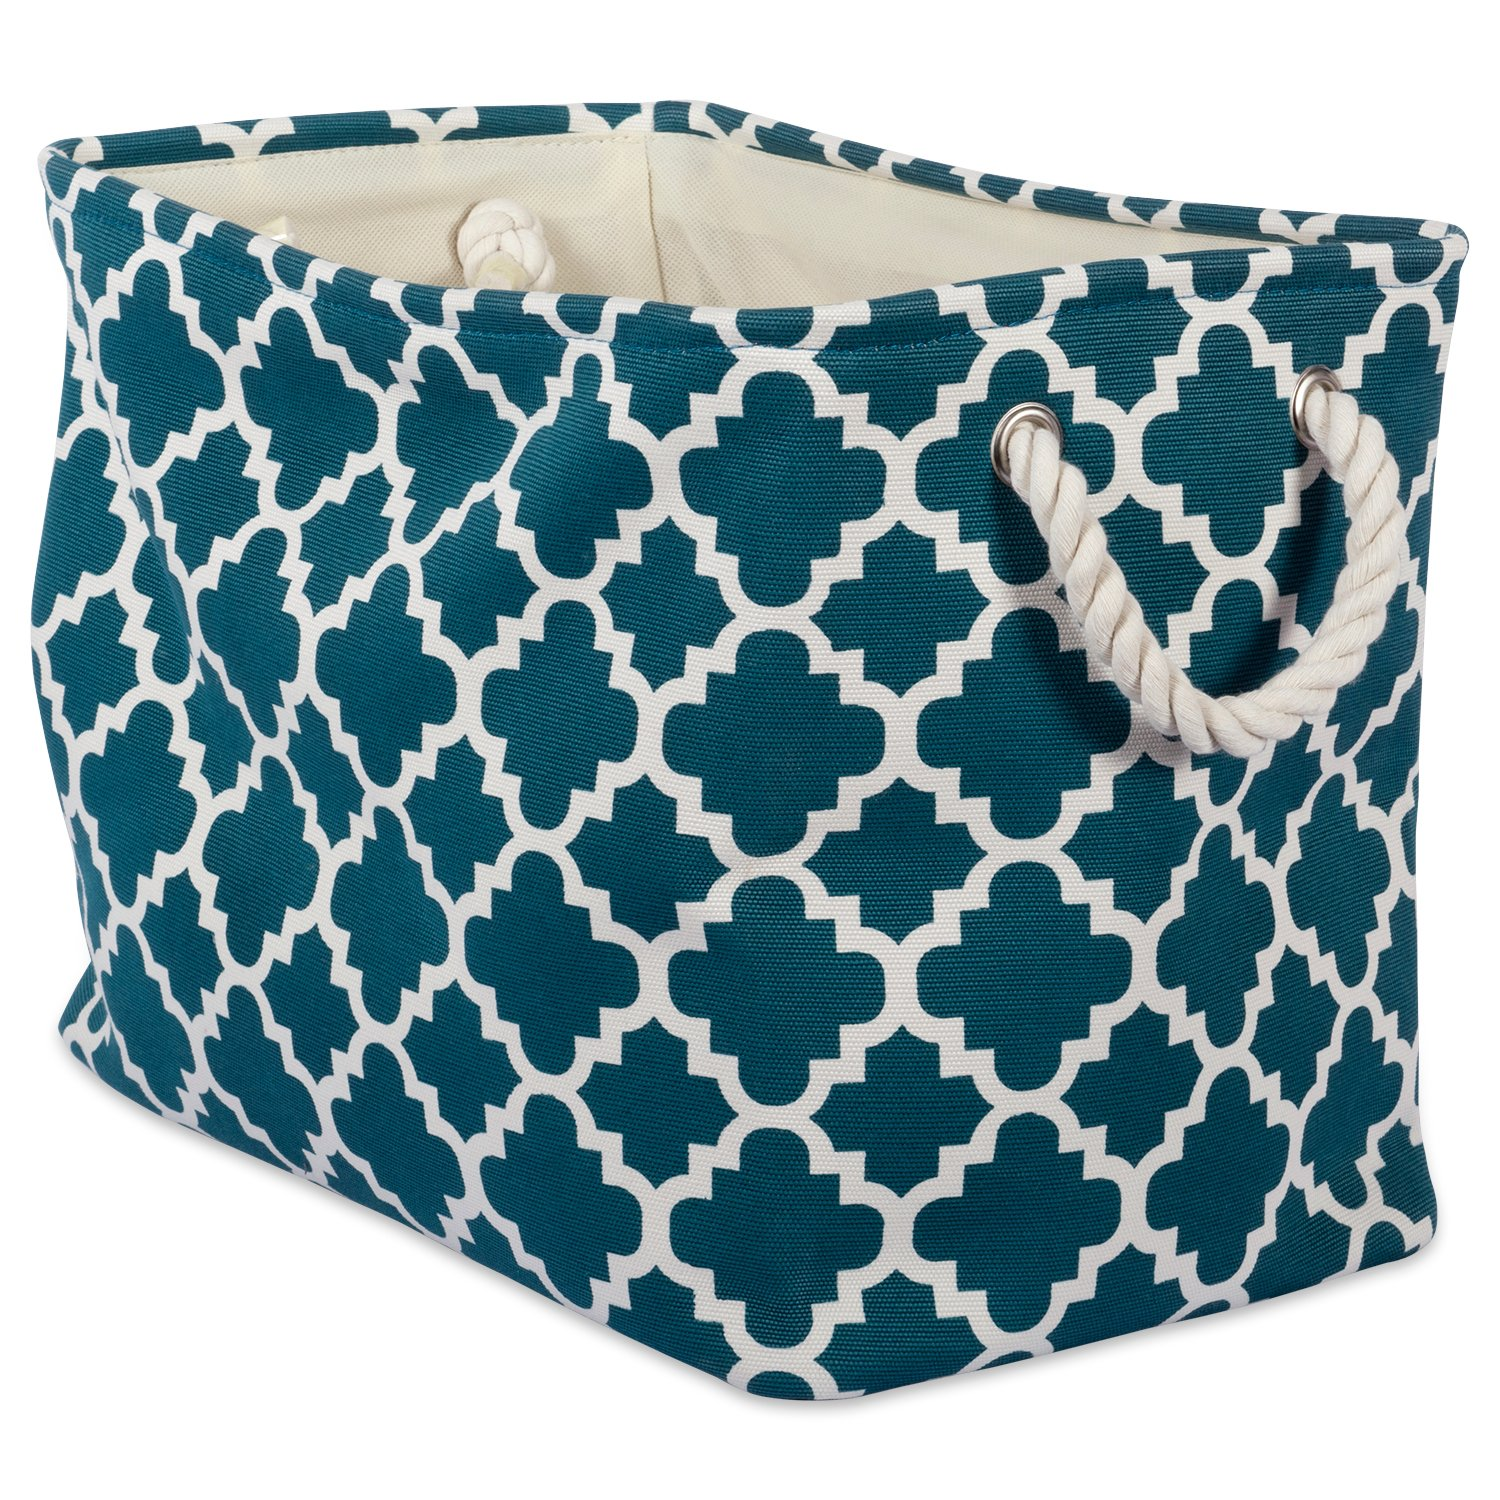 "DII Collapsible Polyester Storage Basket or Bin with Durable Cotton Handles, Home Organizer Solution for Office, Bedroom, Closet, Toys, Laundry (Large – 18x12x15""), Teal Lattice"